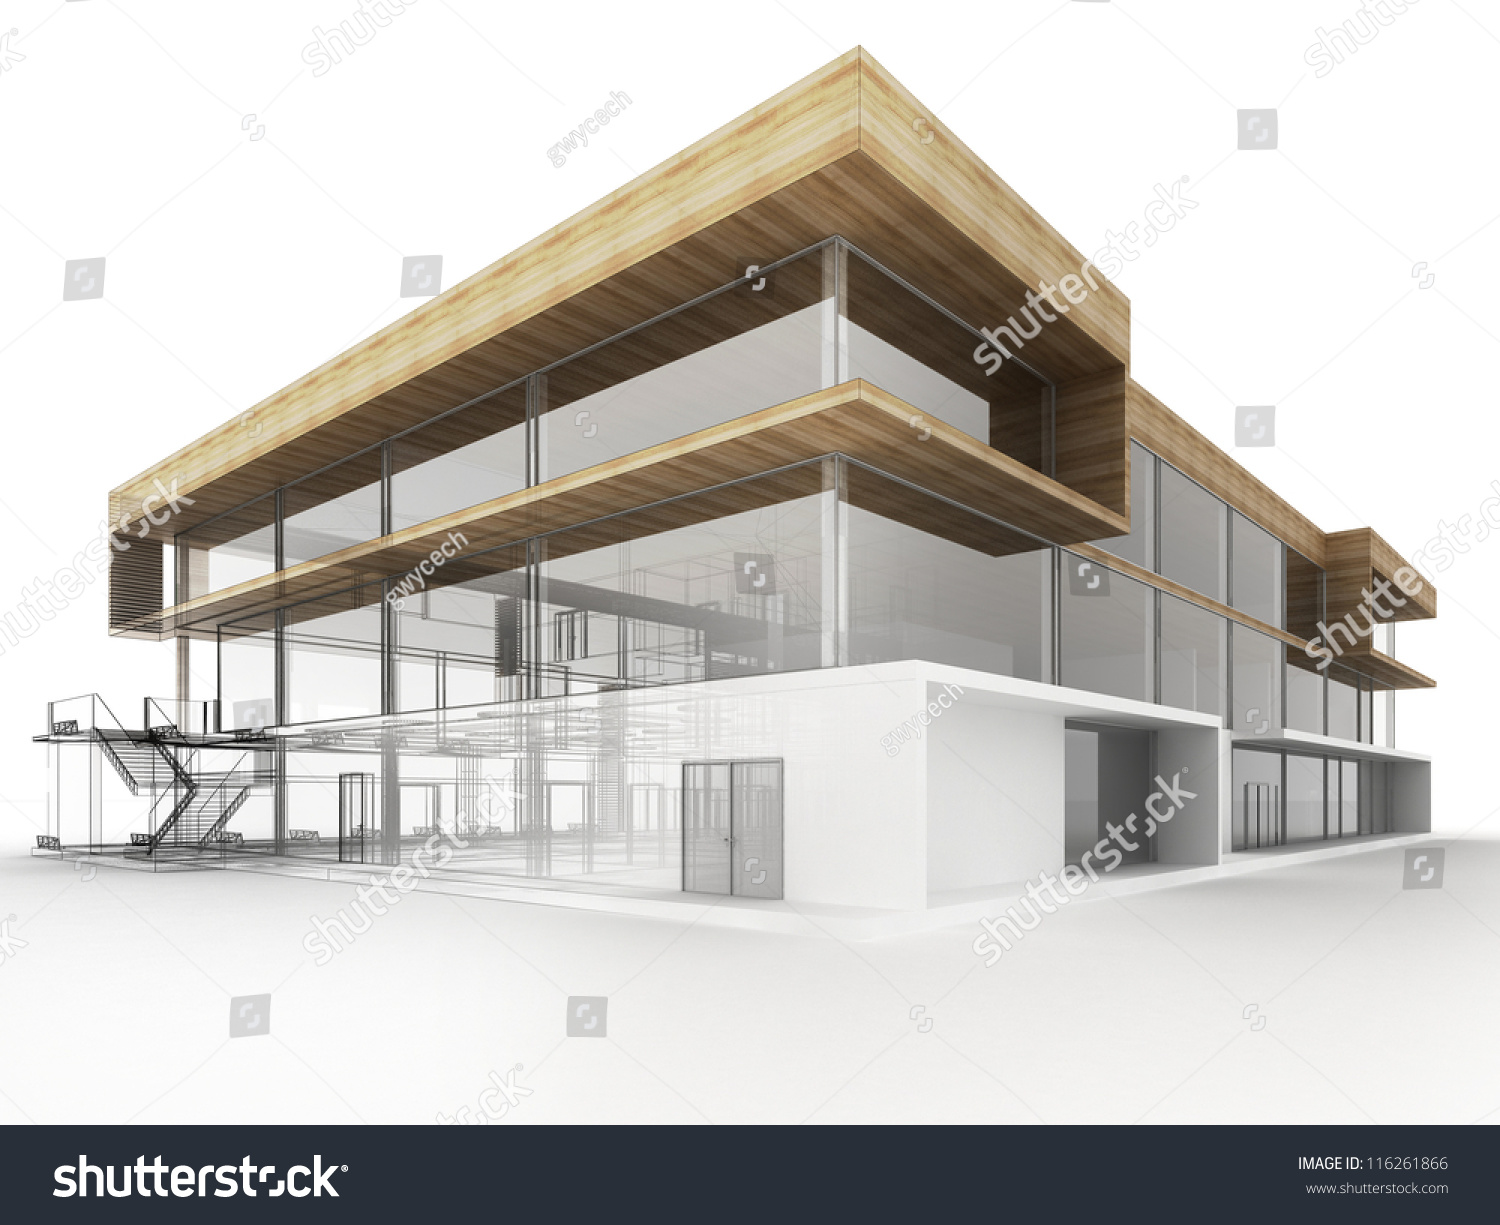 Image gallery modern office building design for Office building plans and designs